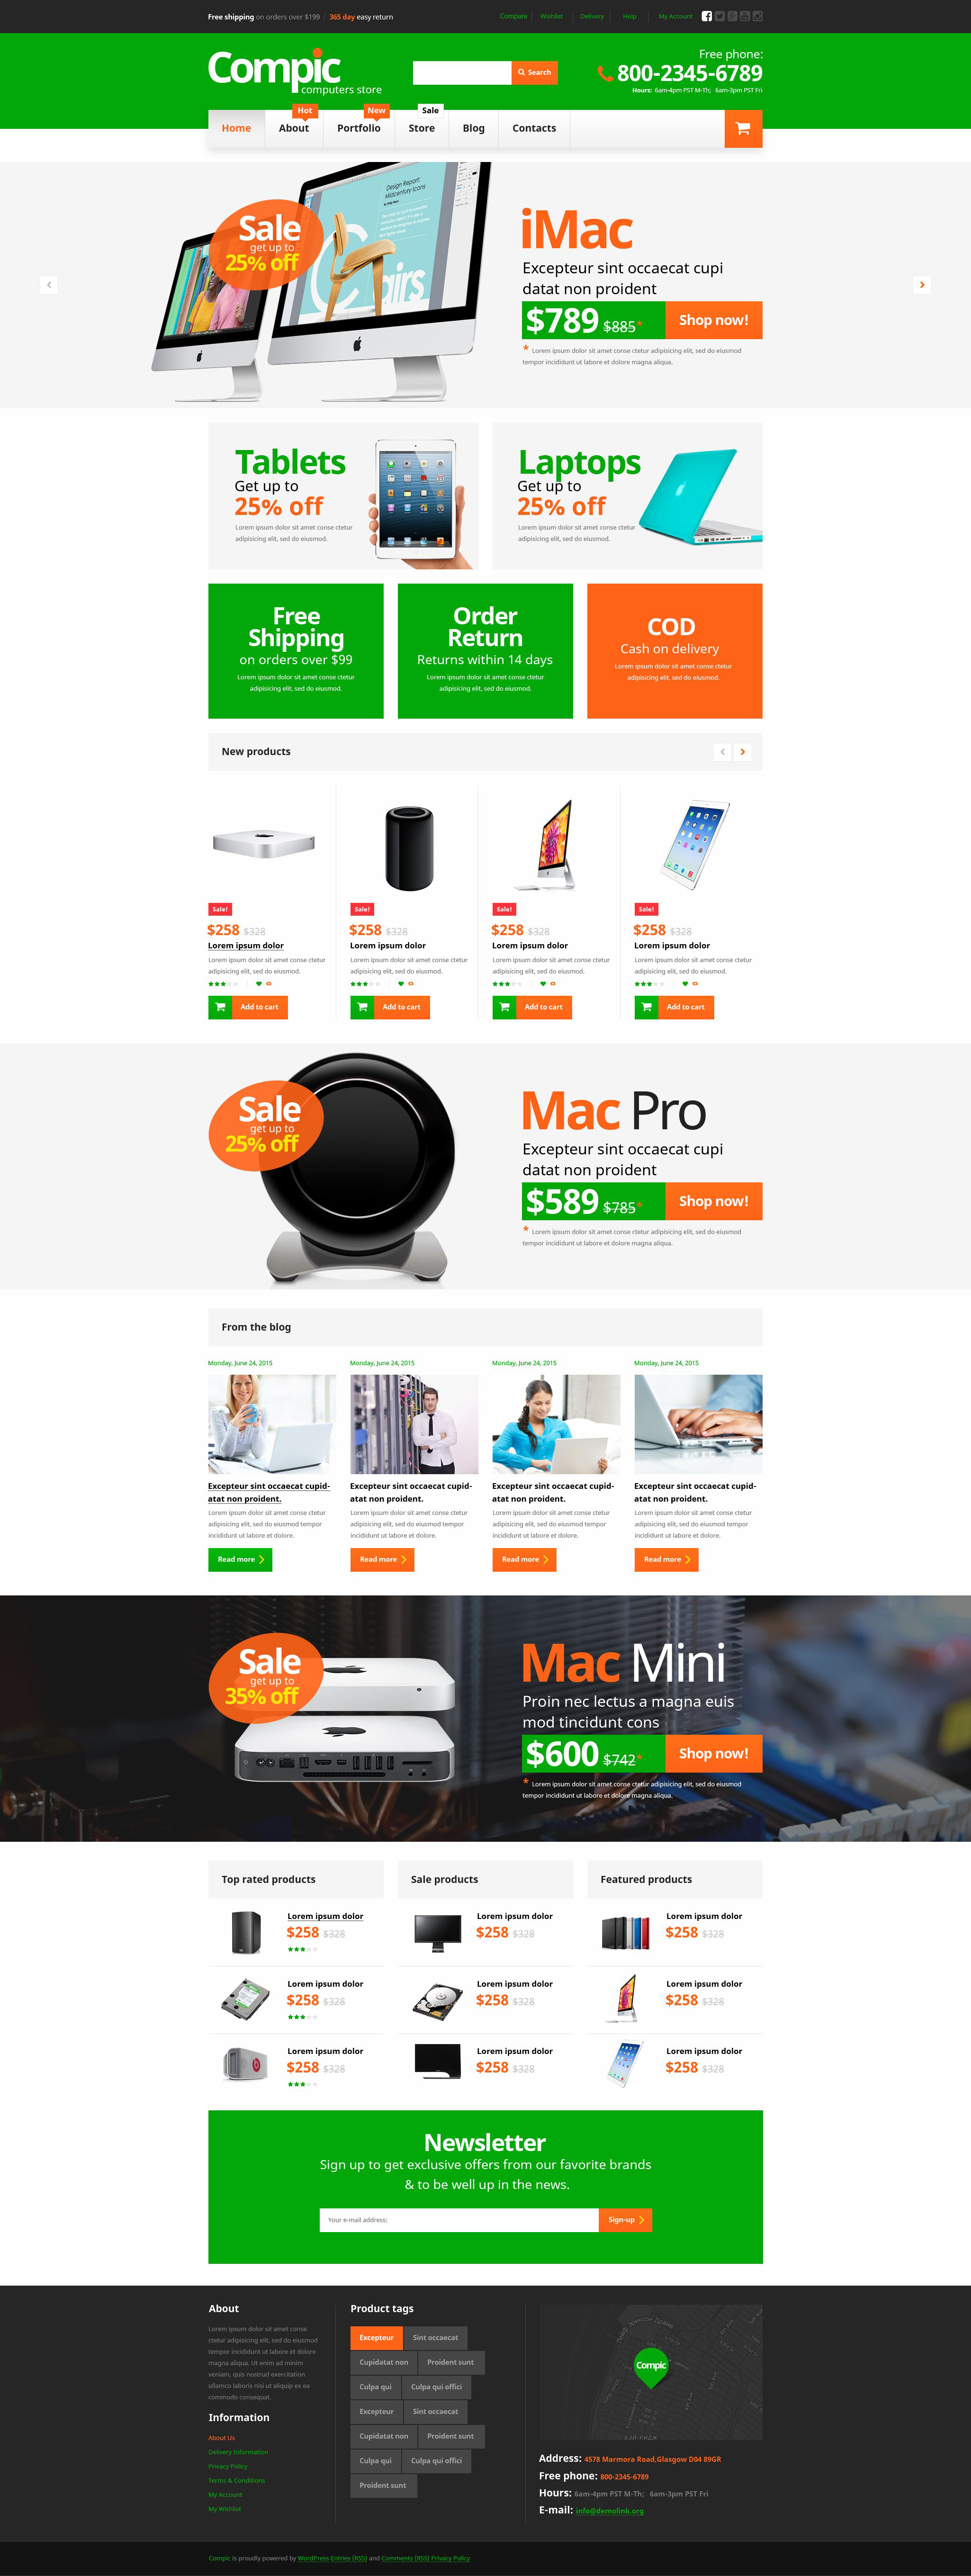 The Compic Computers Store WooCommerce Design 53328, one of the best WooCommerce themes of its kind (software, most popular), also known as compic computers store WooCommerce template, hardware online shop WooCommerce template, computer systems WooCommerce template, windows WooCommerce template, products WooCommerce template, linux WooCommerce template, Mac OS X WooCommerce template, IT servers WooCommerce template, disk WooCommerce template, space WooCommerce template, processor WooCommerce template, technology WooCommerce template, cables WooCommerce template, cable and related with compic computers store, hardware online shop, computer systems, windows, products, linux, Mac OS X, IT servers, disk, space, processor, technology, cables, cable, etc.